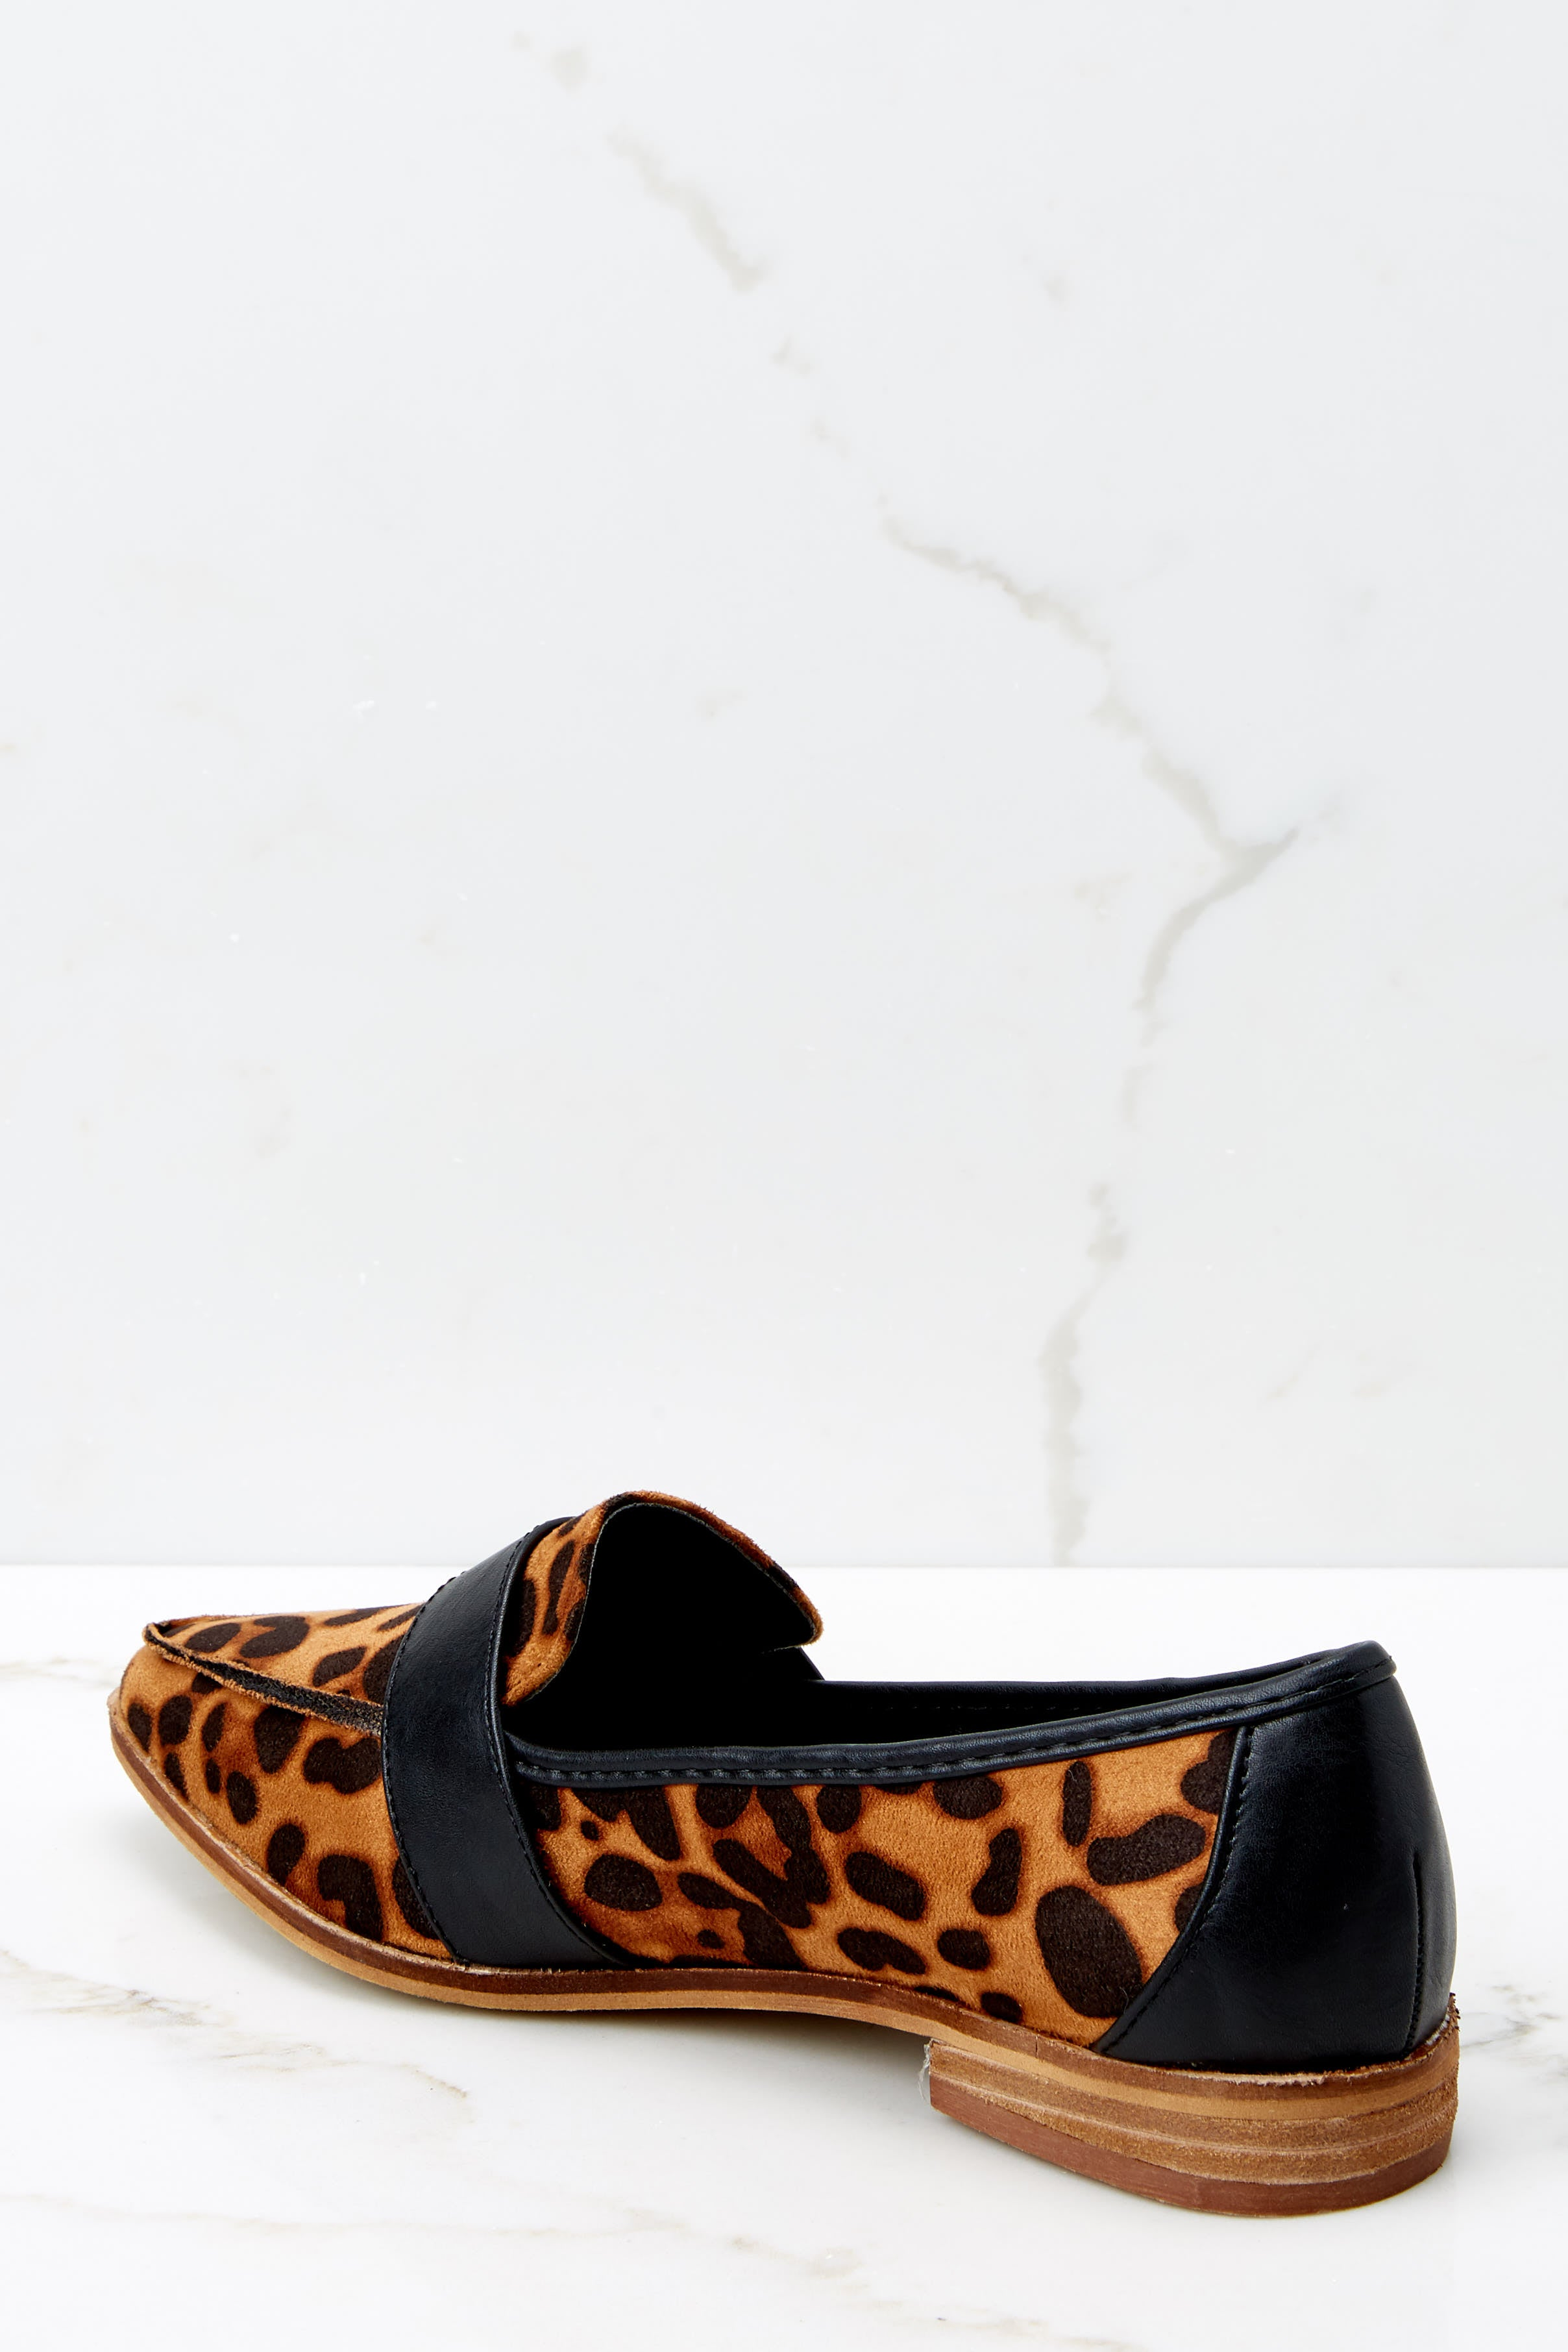 4 Second Glances Leopard Loafers at reddress.com